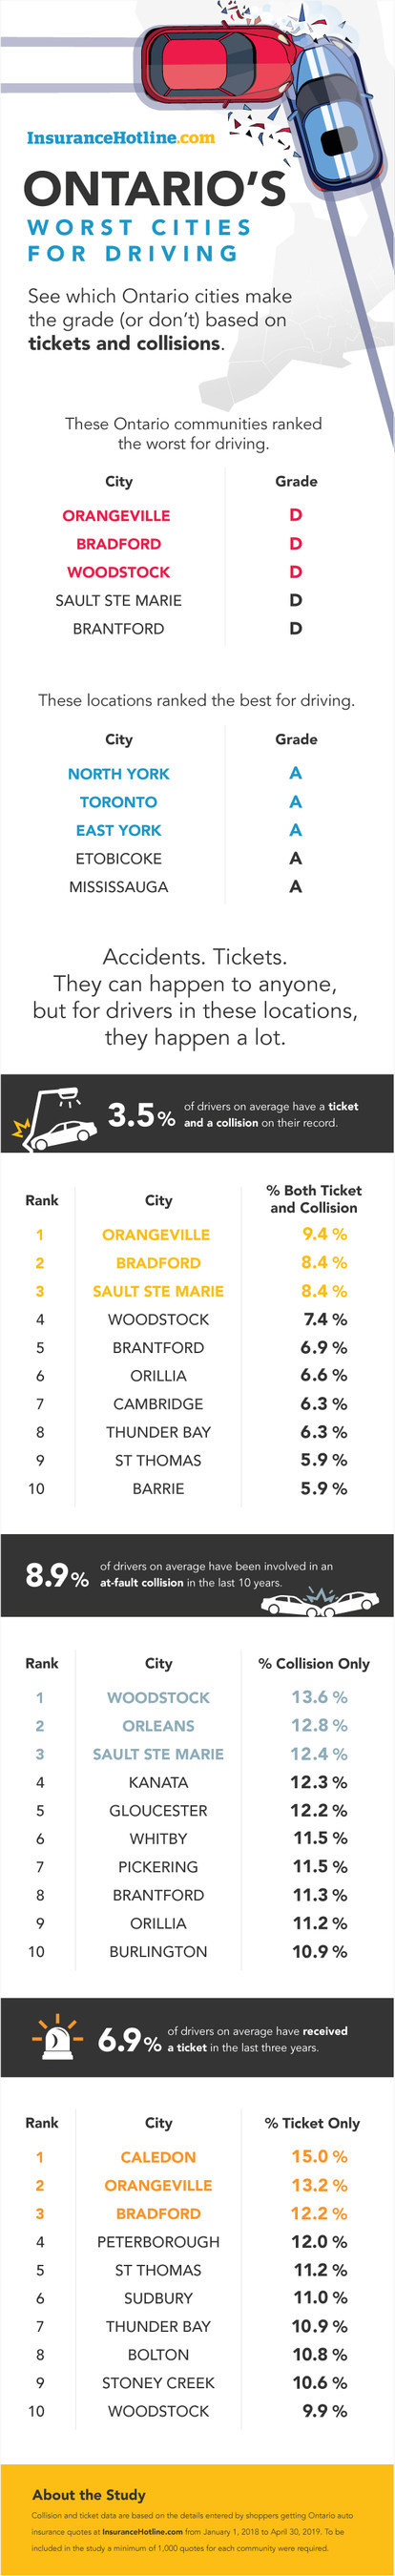 Ontario's Worst and Best Cities based on driving records revealed, new 2019 study (CNW Group/InsuranceHotline.com)